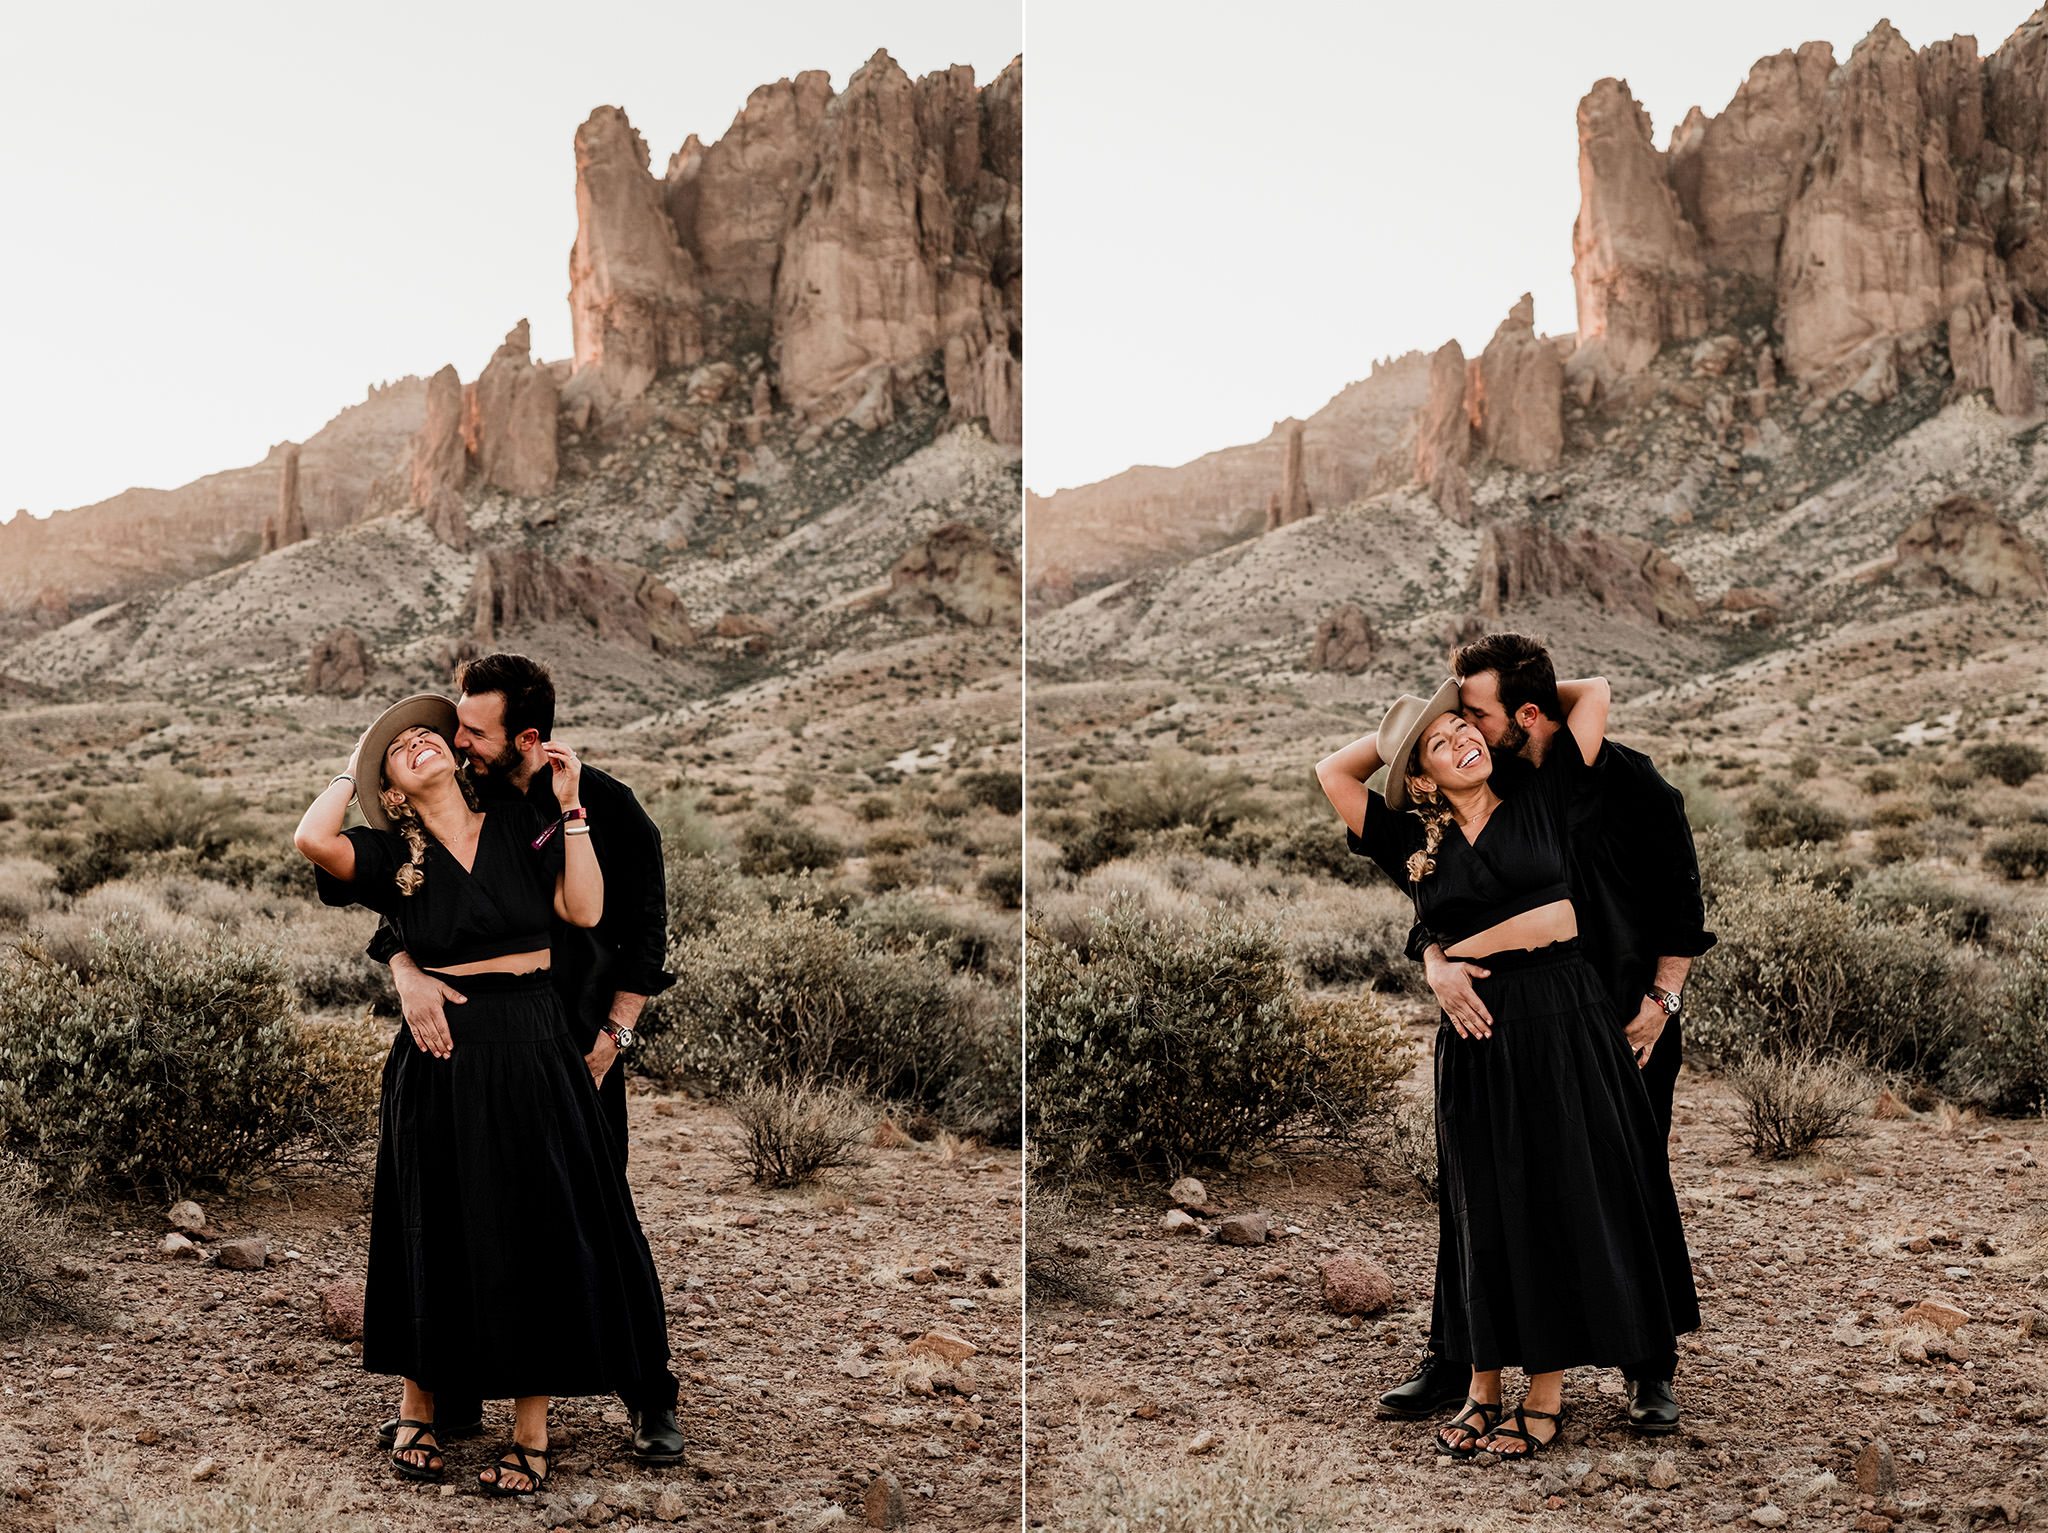 Arizona-Desert-Intimate-Wedding-Photographer-Lost-Dutchman-State-Park (21)